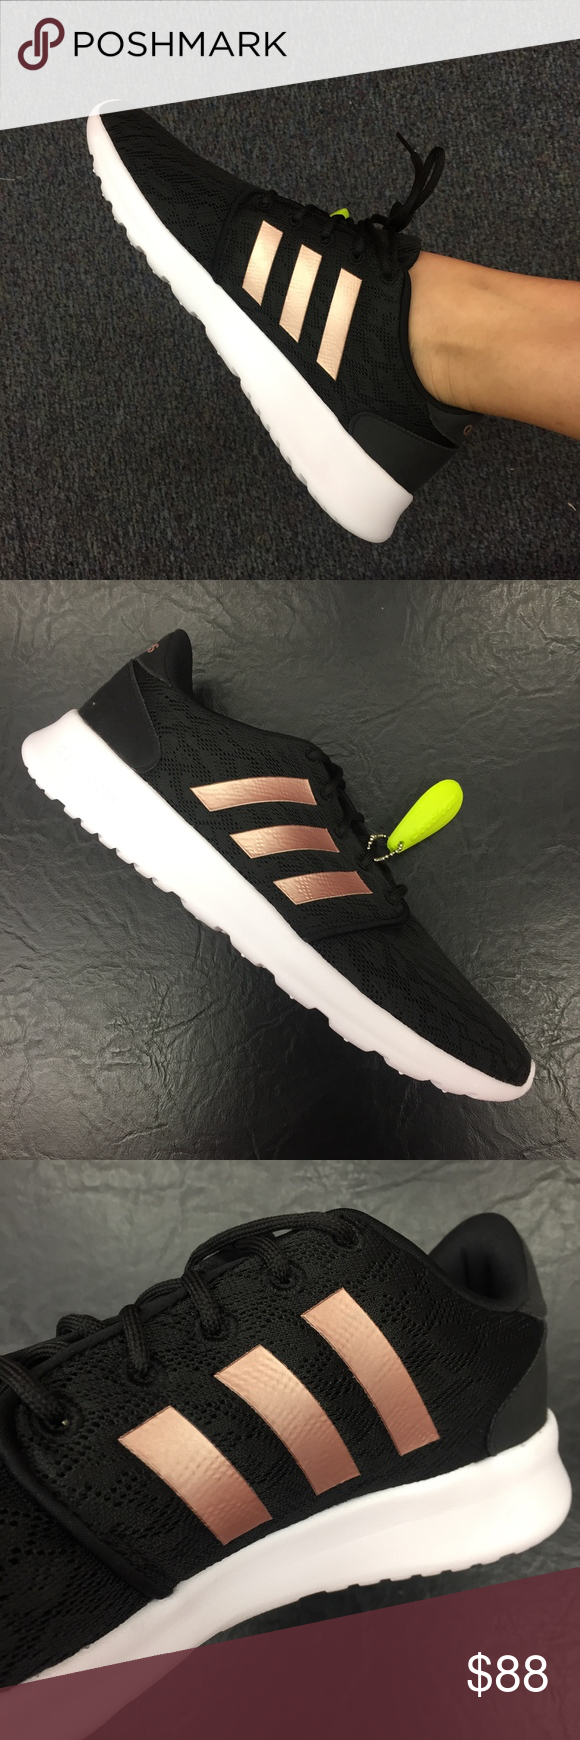 wholesale dealer 108cd 08df5 Adidas Cloudfoam QT Racer Womens Running Shoe!! brand new in original  box!!! Extra comfy, sleek and ready to run, the Adidas Cloudfoam QT Racer  womens ...